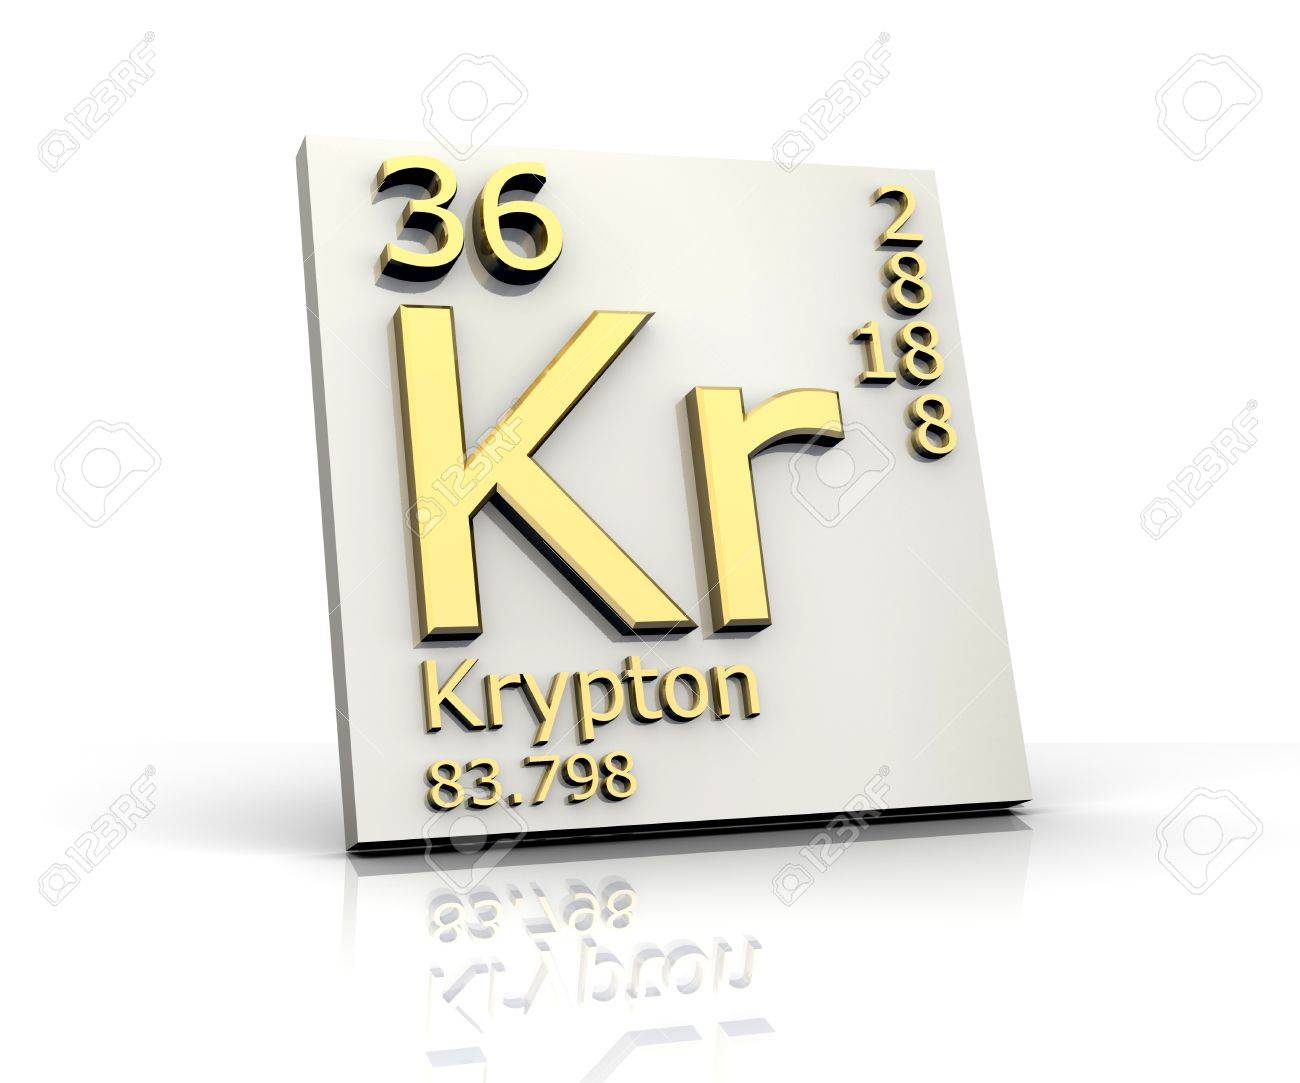 Krypton form periodic table of elements stock photo picture and krypton form periodic table of elements stock photo 4315574 urtaz